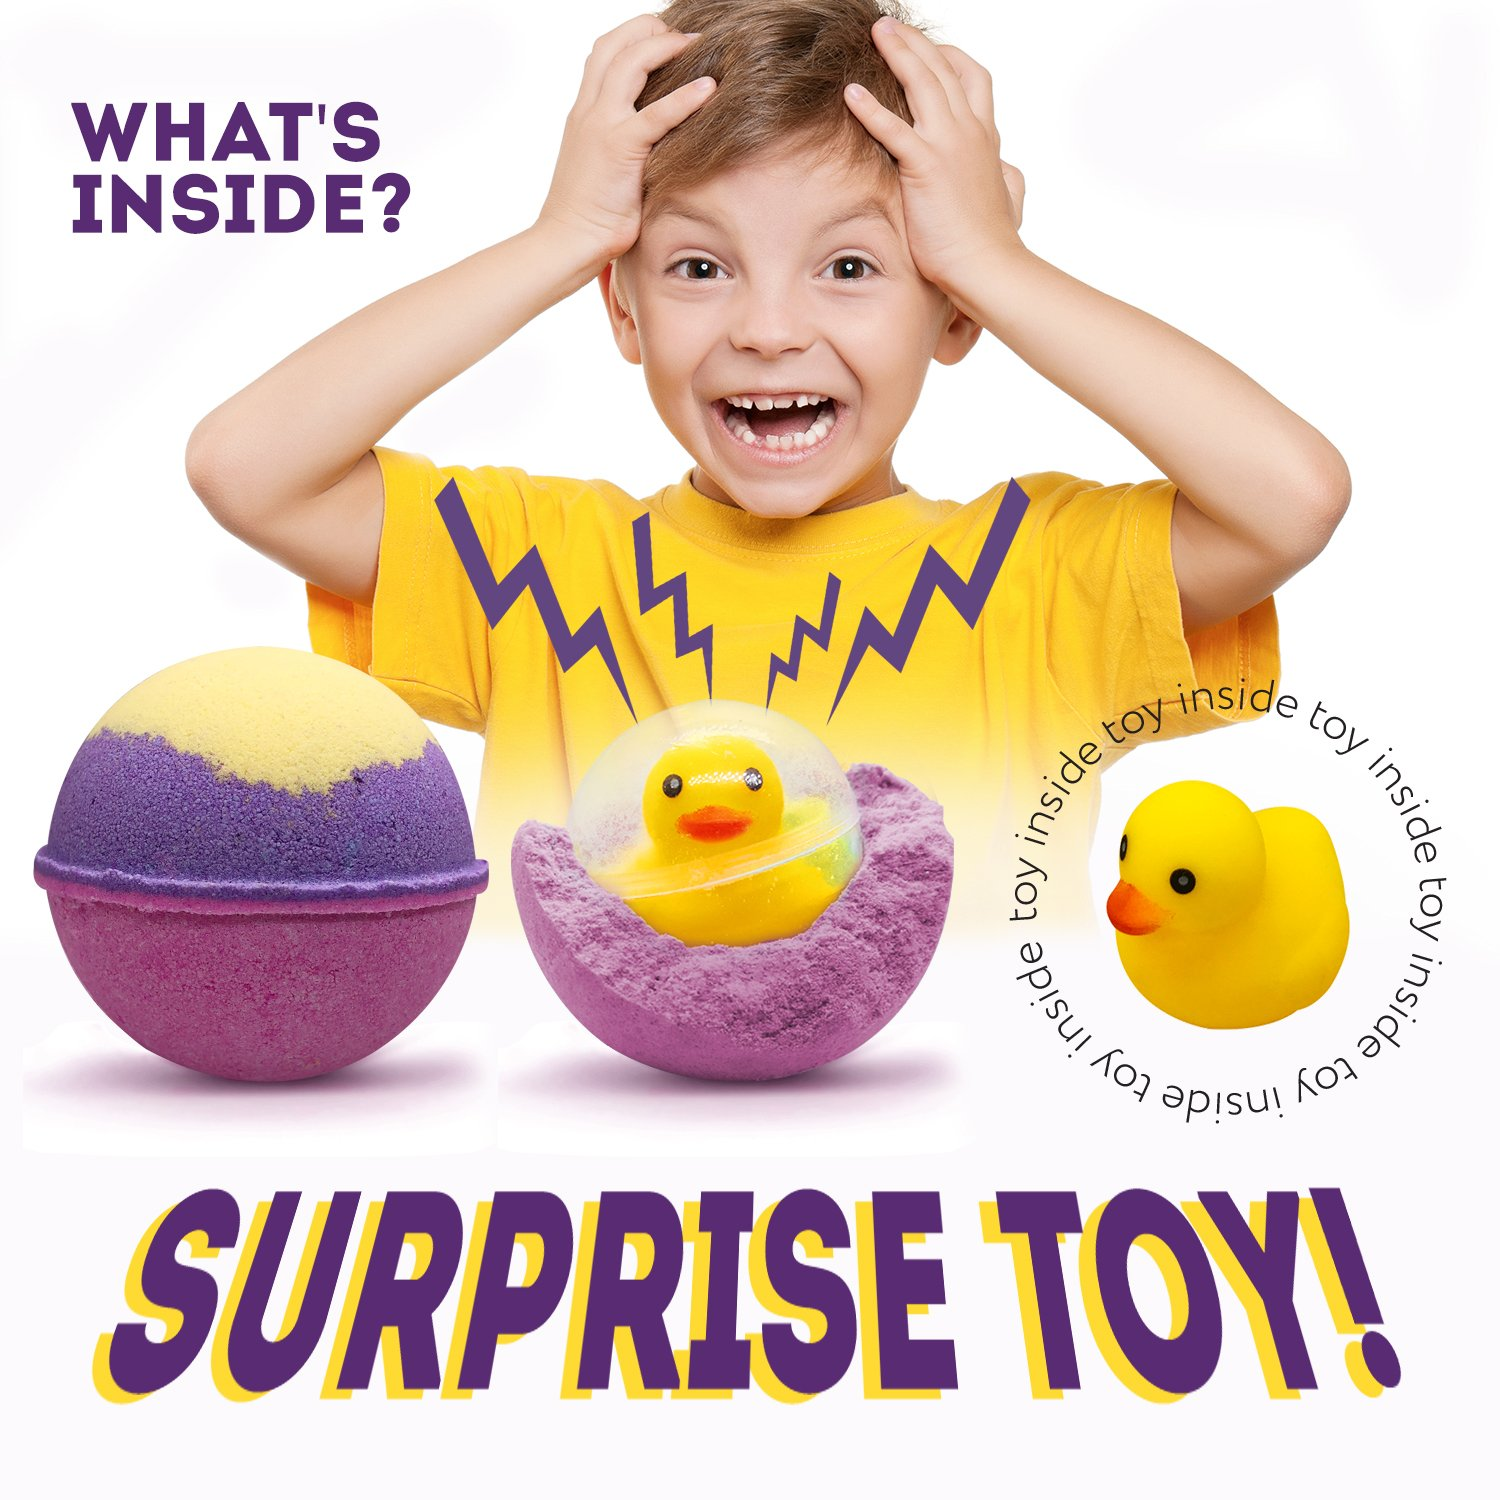 Bath Bombs Kids with Surprise Toys Inside - Natural XXL 7 OZ Fun and Safe for Kids Bath Fizzies - 1 Pack - Hand Made in USA